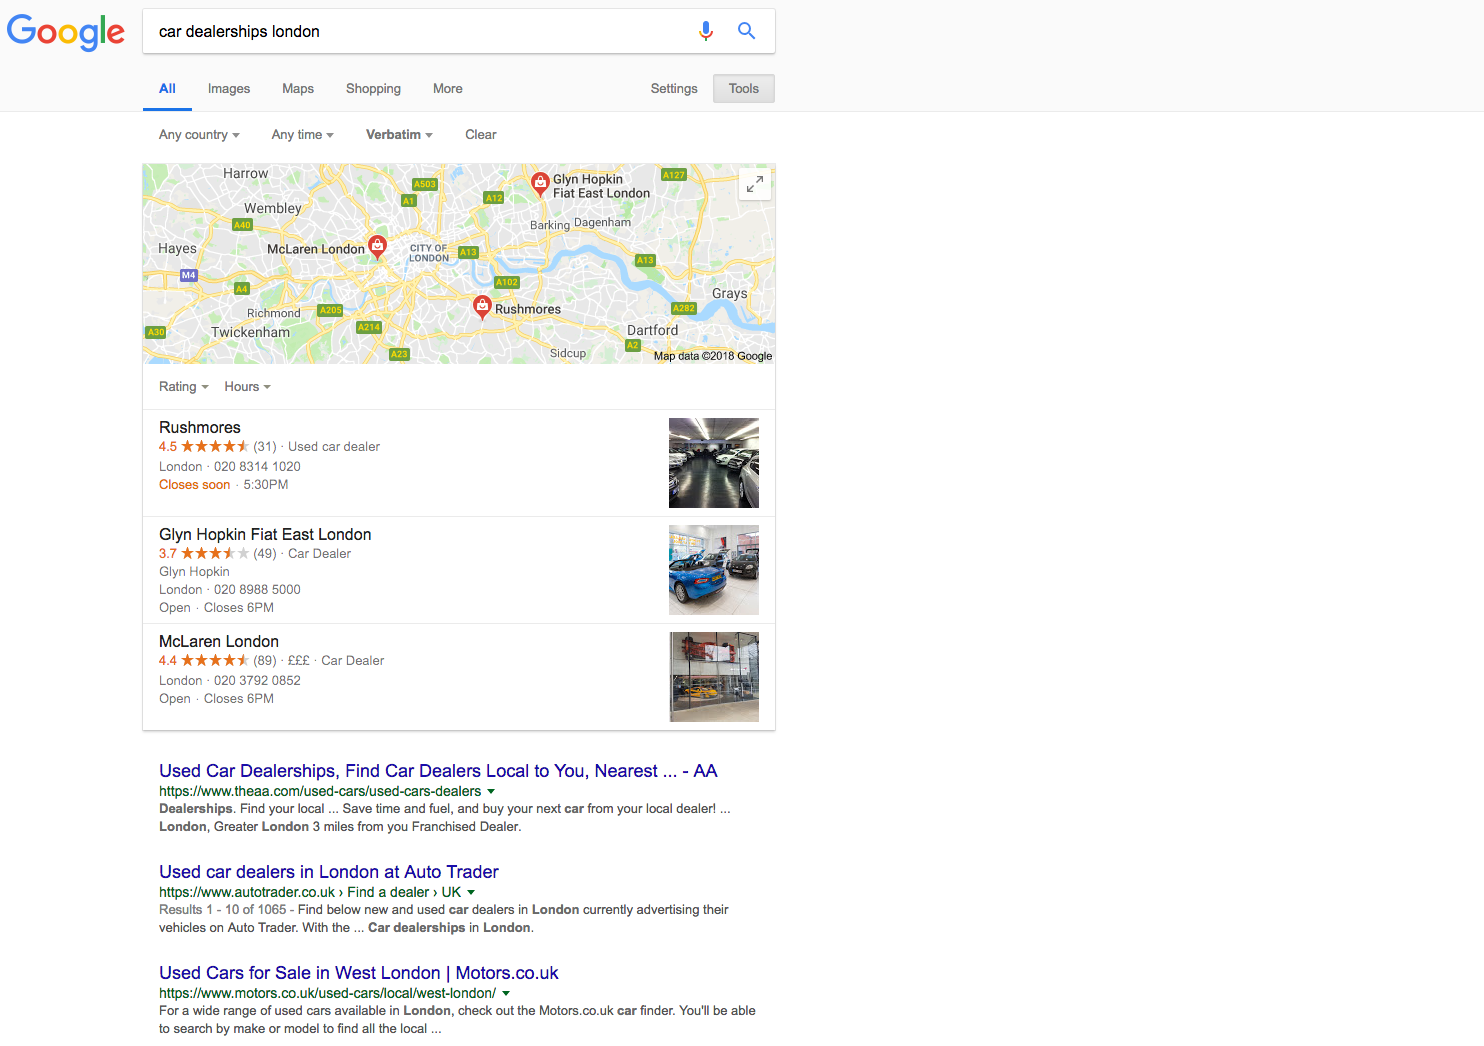 seo for automotive industry